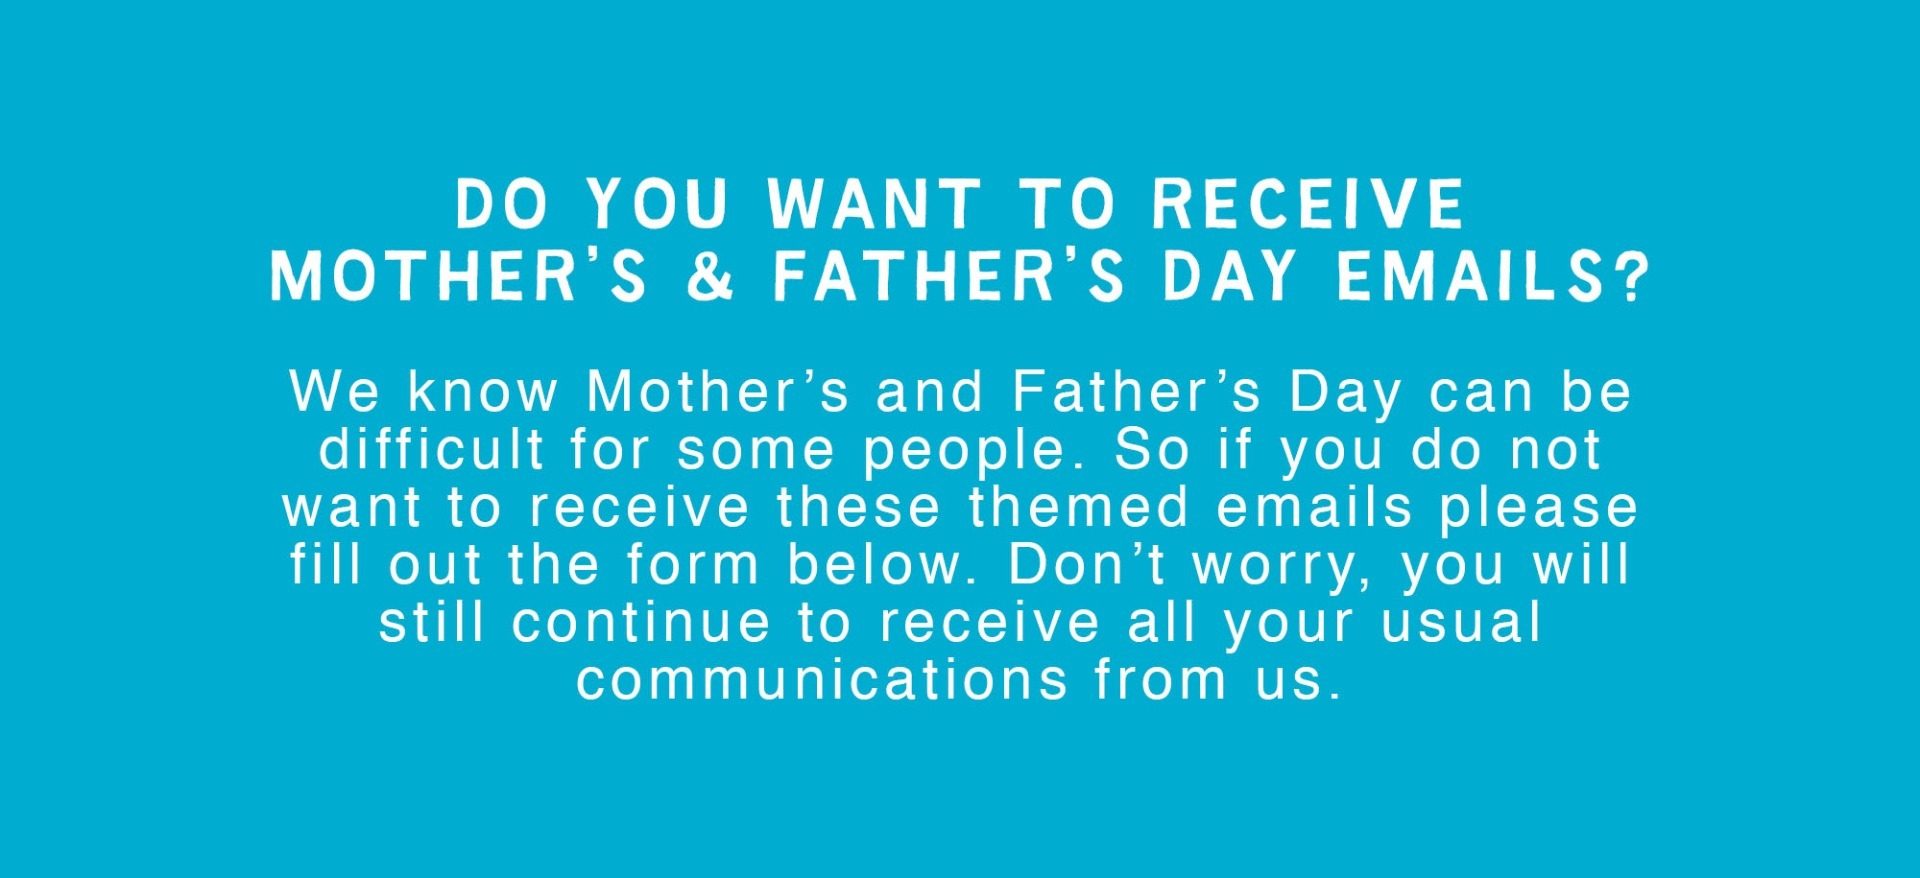 Opt out from Mother's Day and Father's Day emails below.